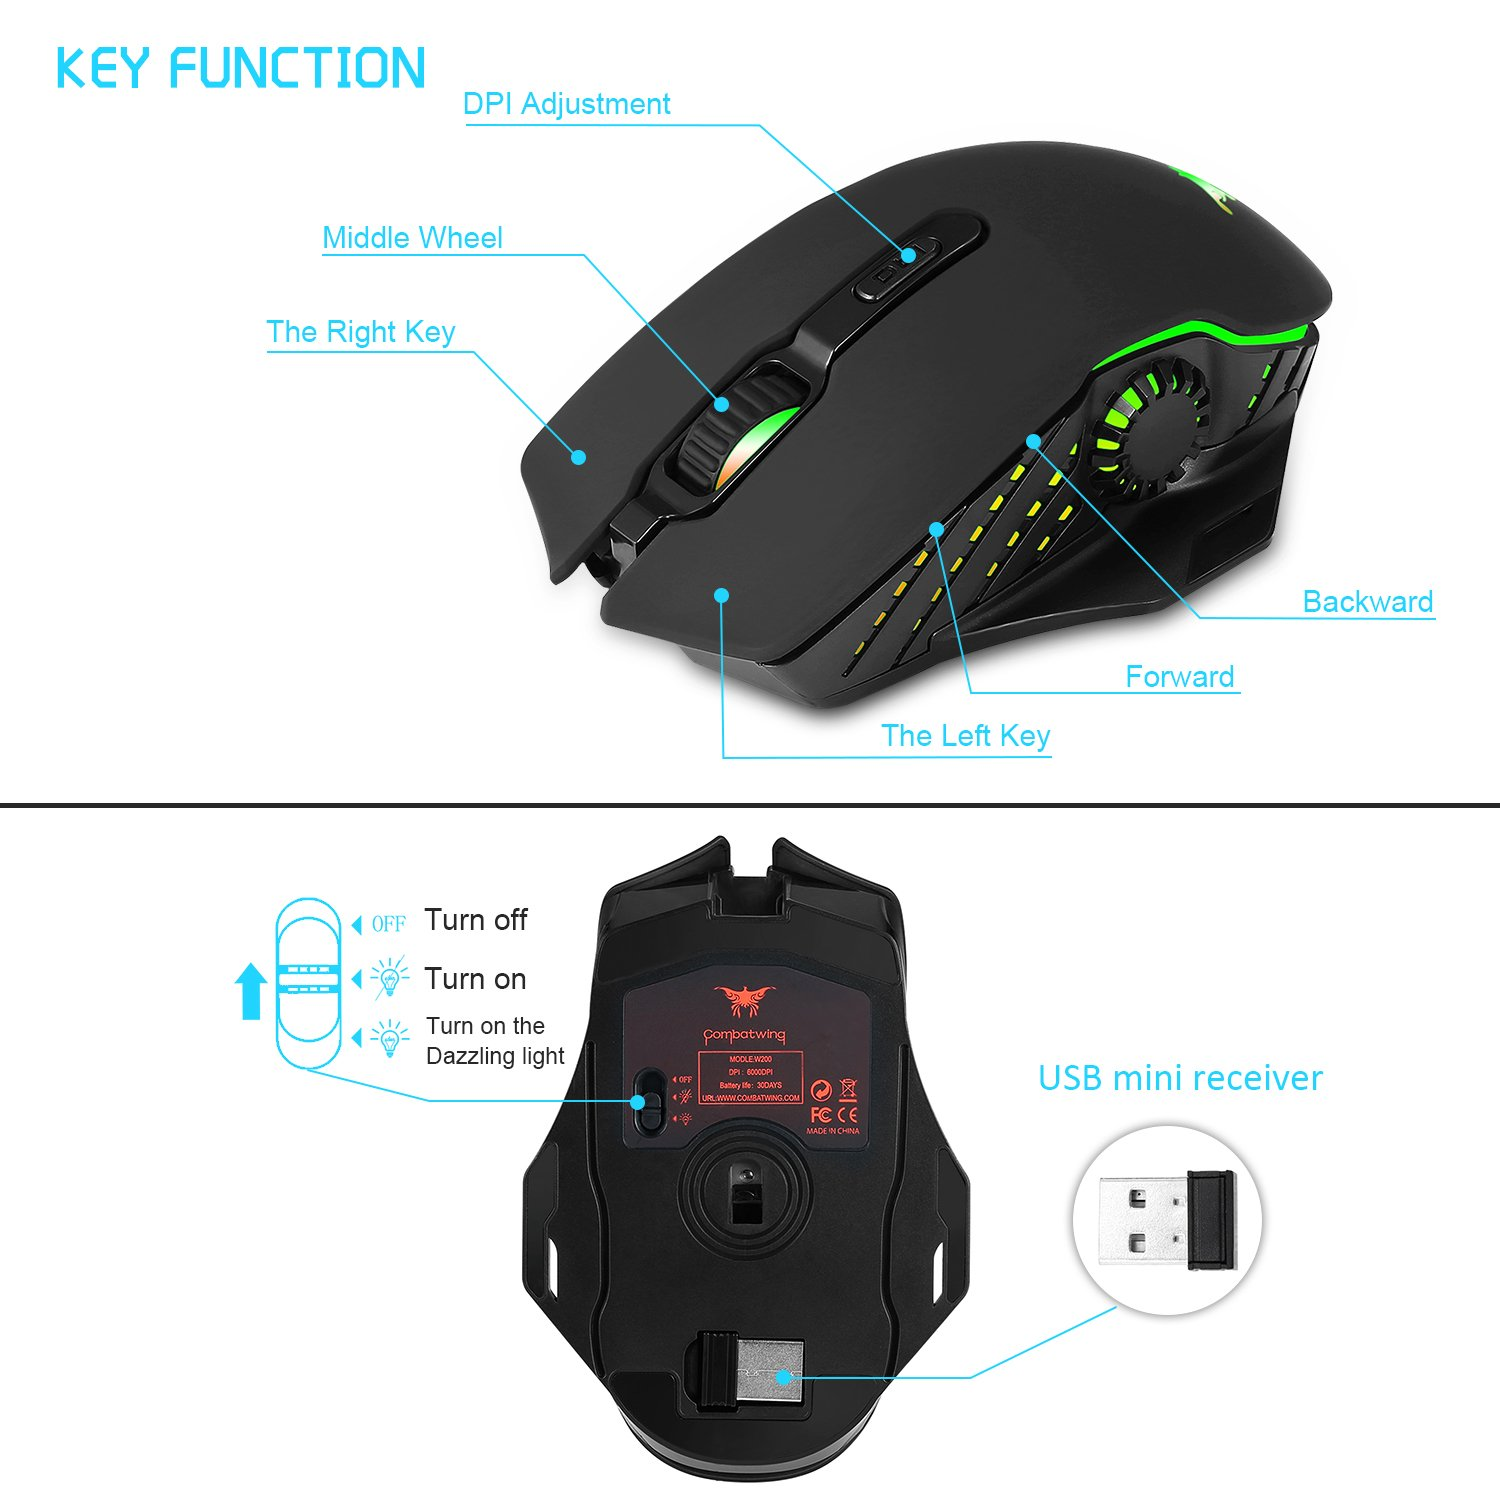 Wireless Wired Gaming Mouse,Dual-mode 2.4GHz Rechargeable Optical Mice with USB Receiver,6000 DPI 6 Adjustable DPI Levels,6 Color Breathing Lights for Laptop PC Mac Pro and Computer(Black)